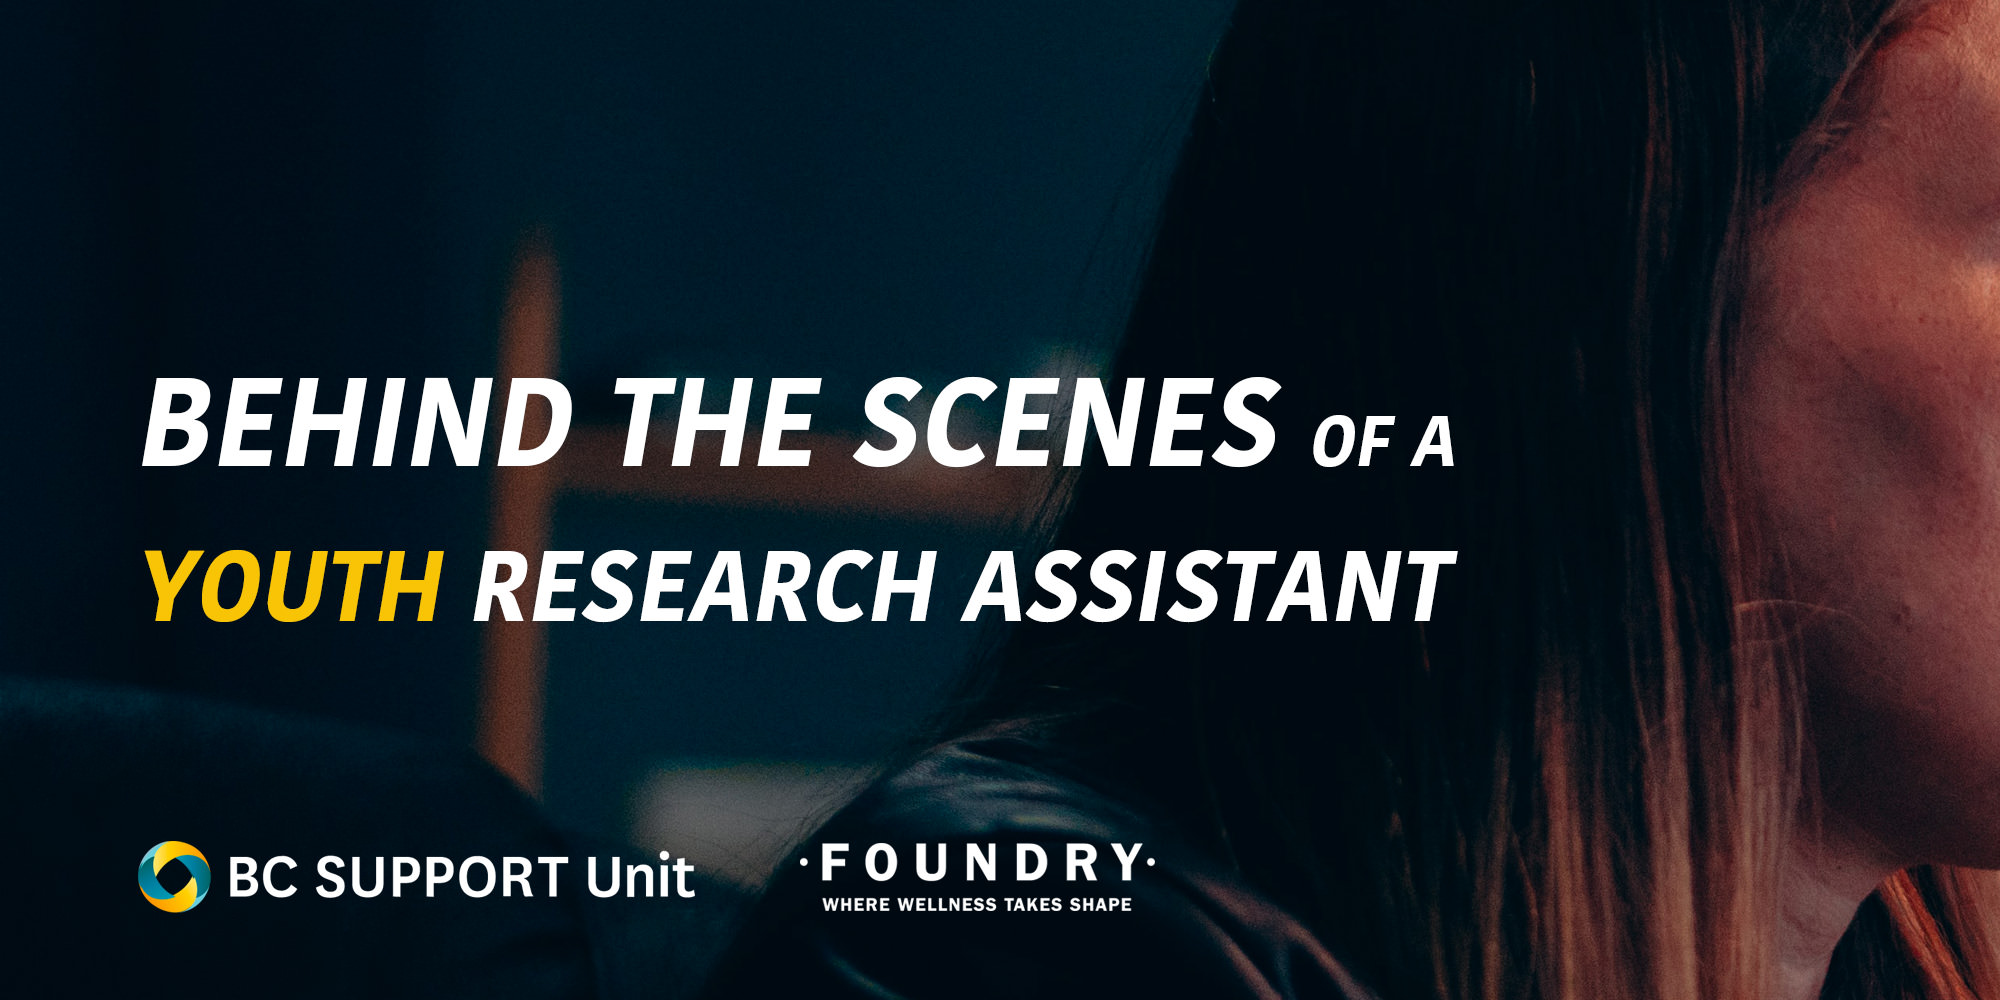 Behind the Scenes of a Youth Research Assistant